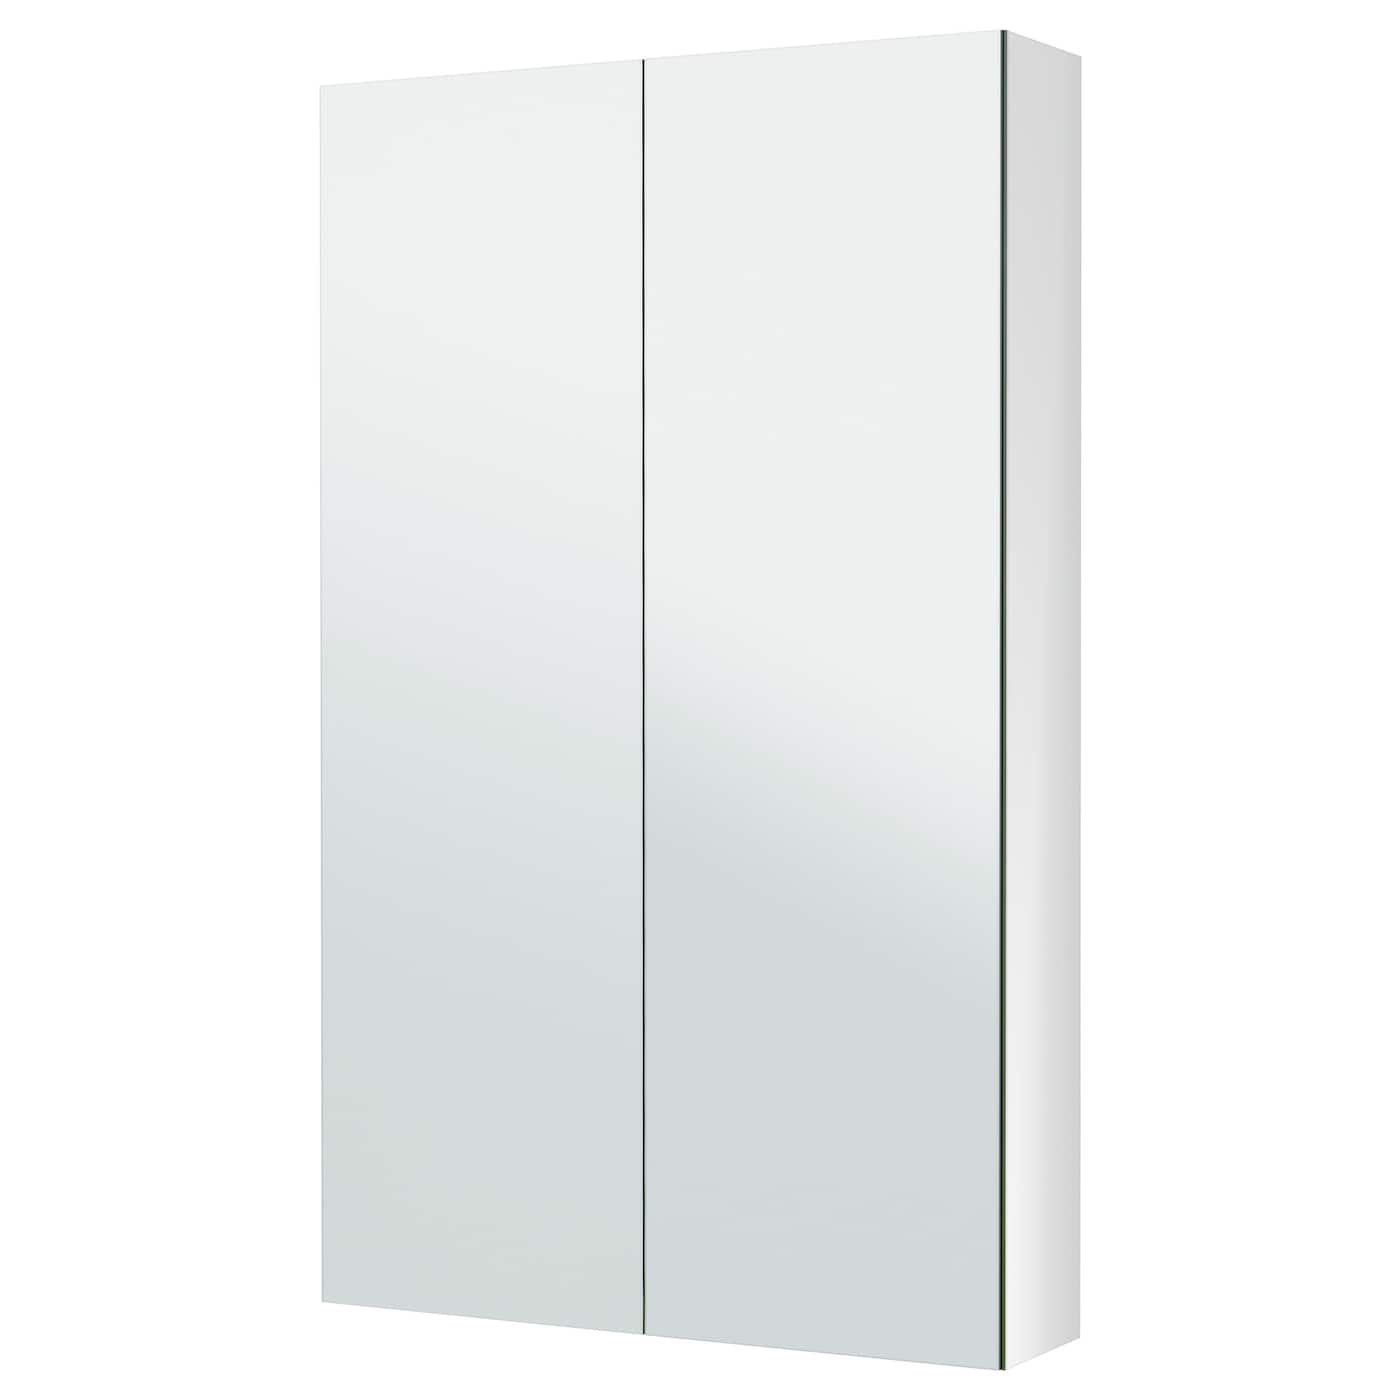 Bathroom Cabinet Mirrored Bathroom Wall Cabinets  Ikea